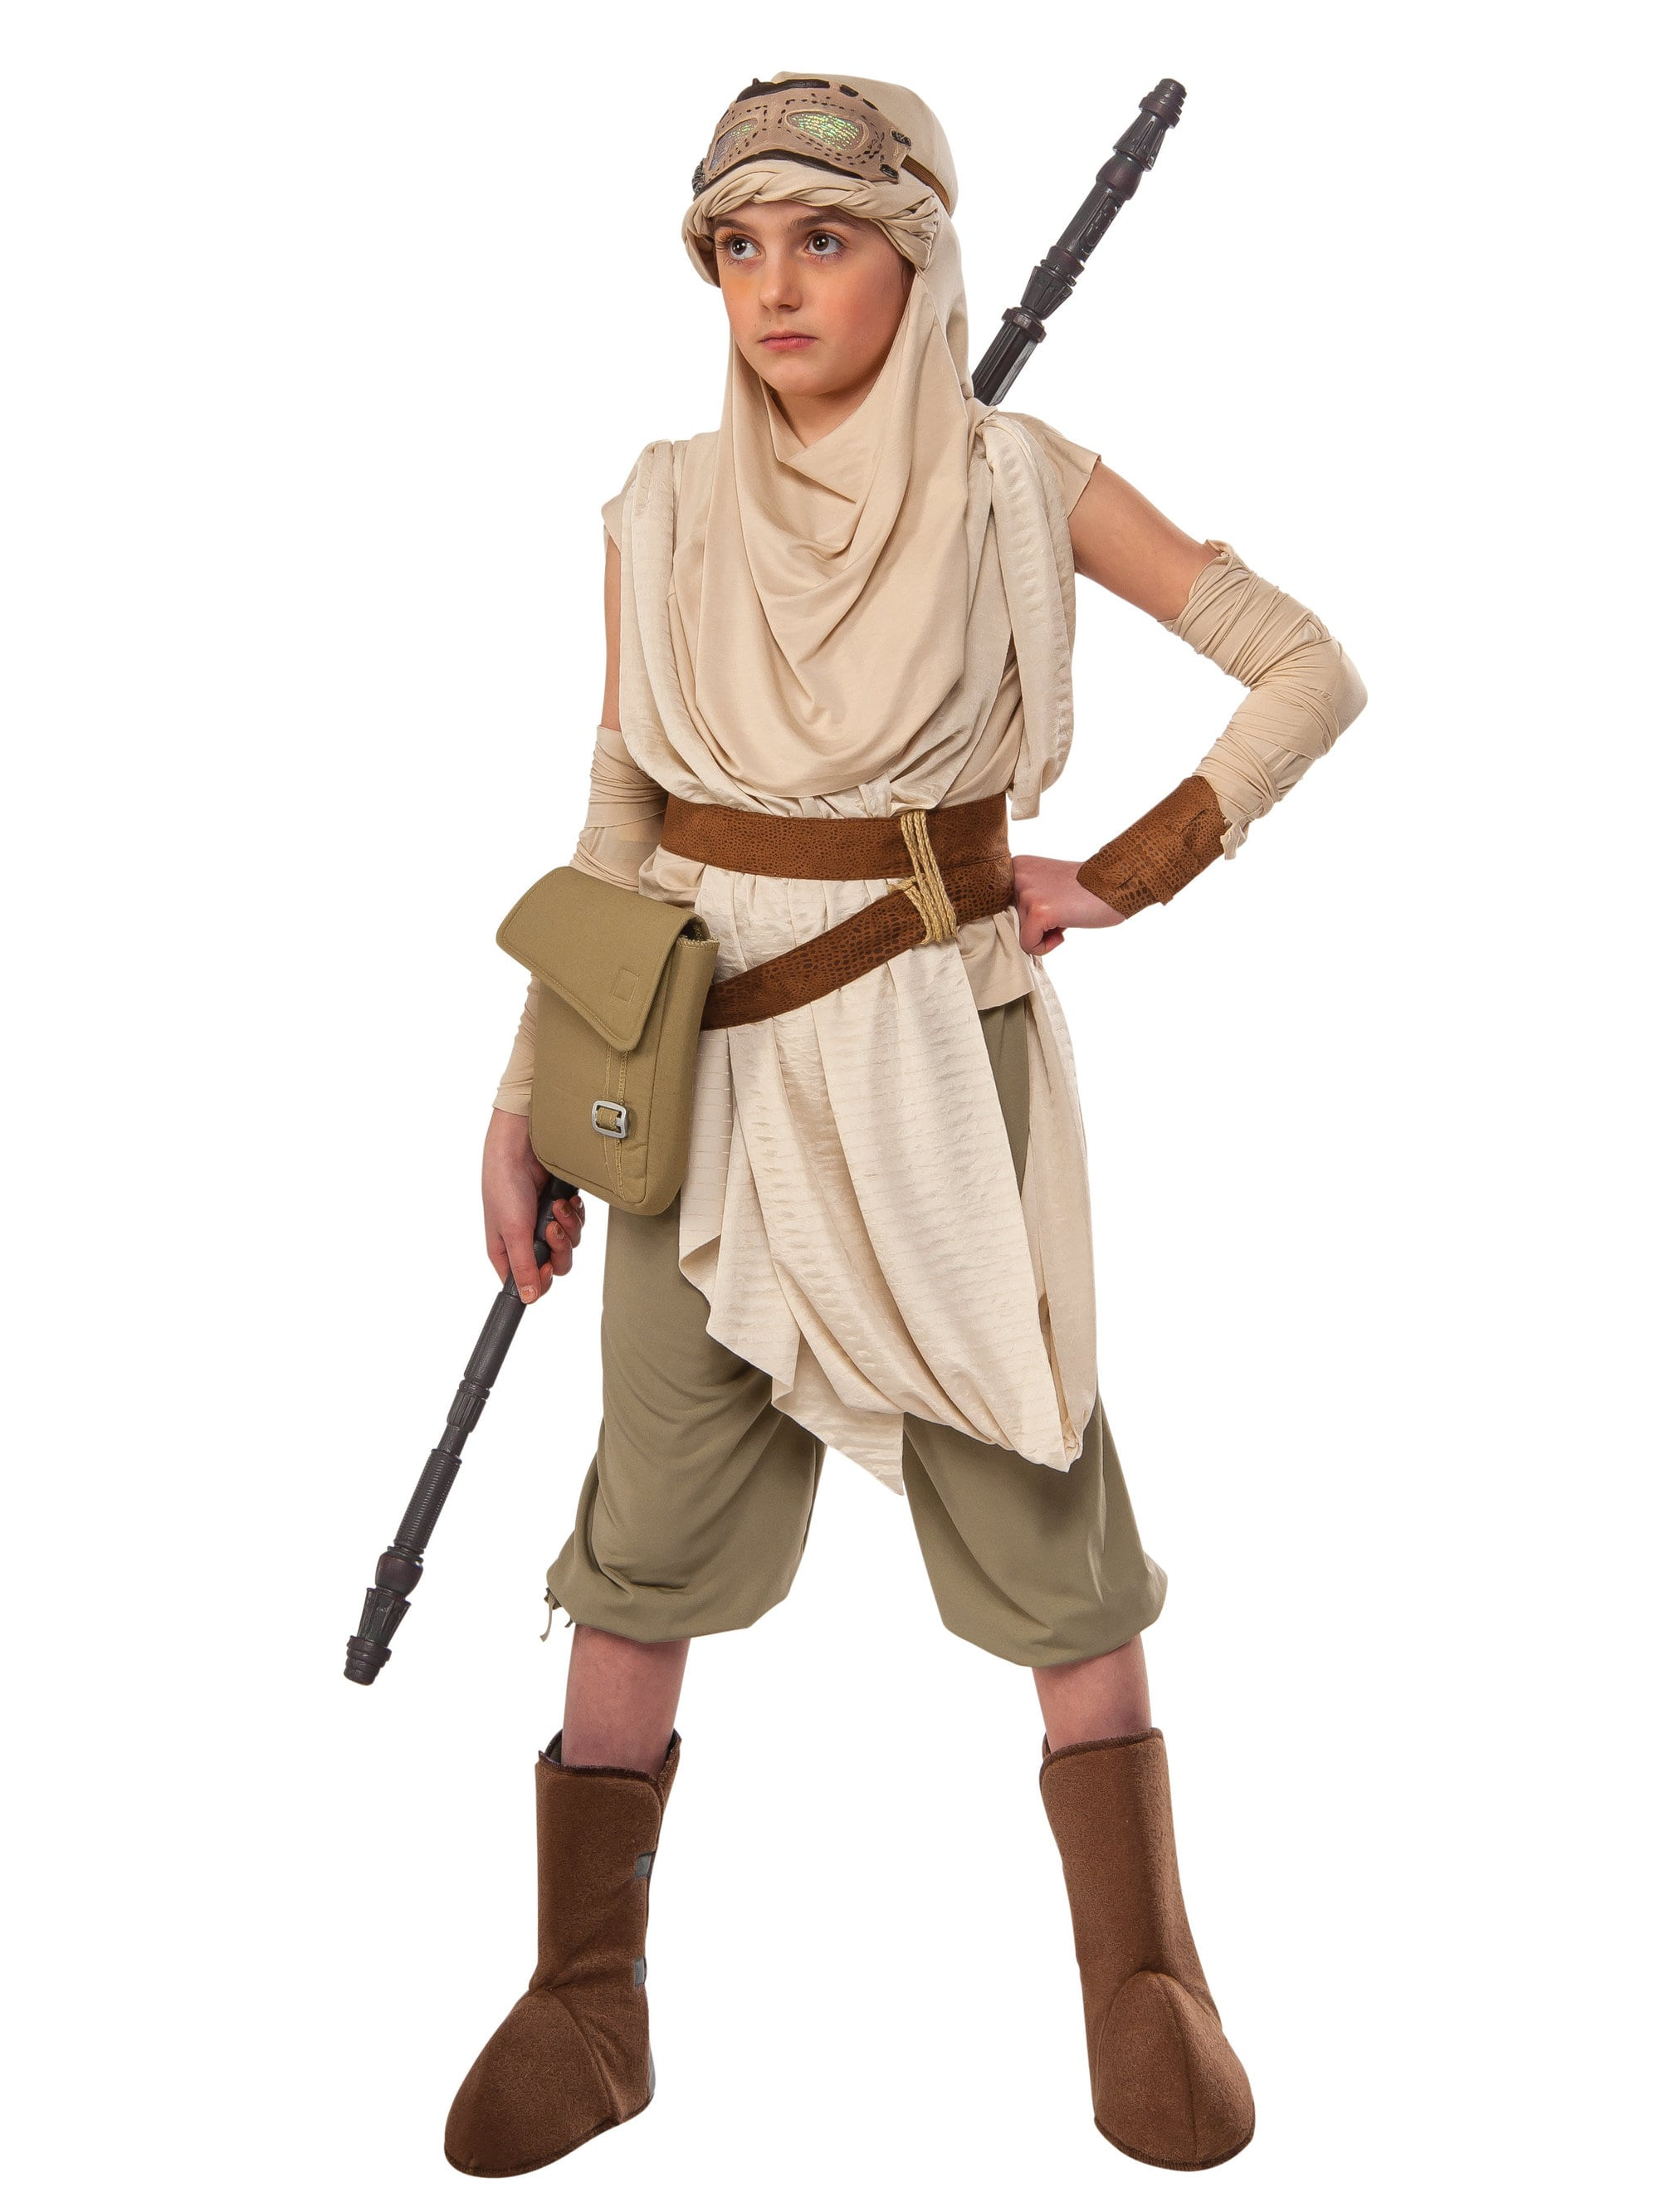 Star Wars The Force Awakens Premium Rey Costume For Children Girls Costumes For 2019 Wholesale Halloween Costumes